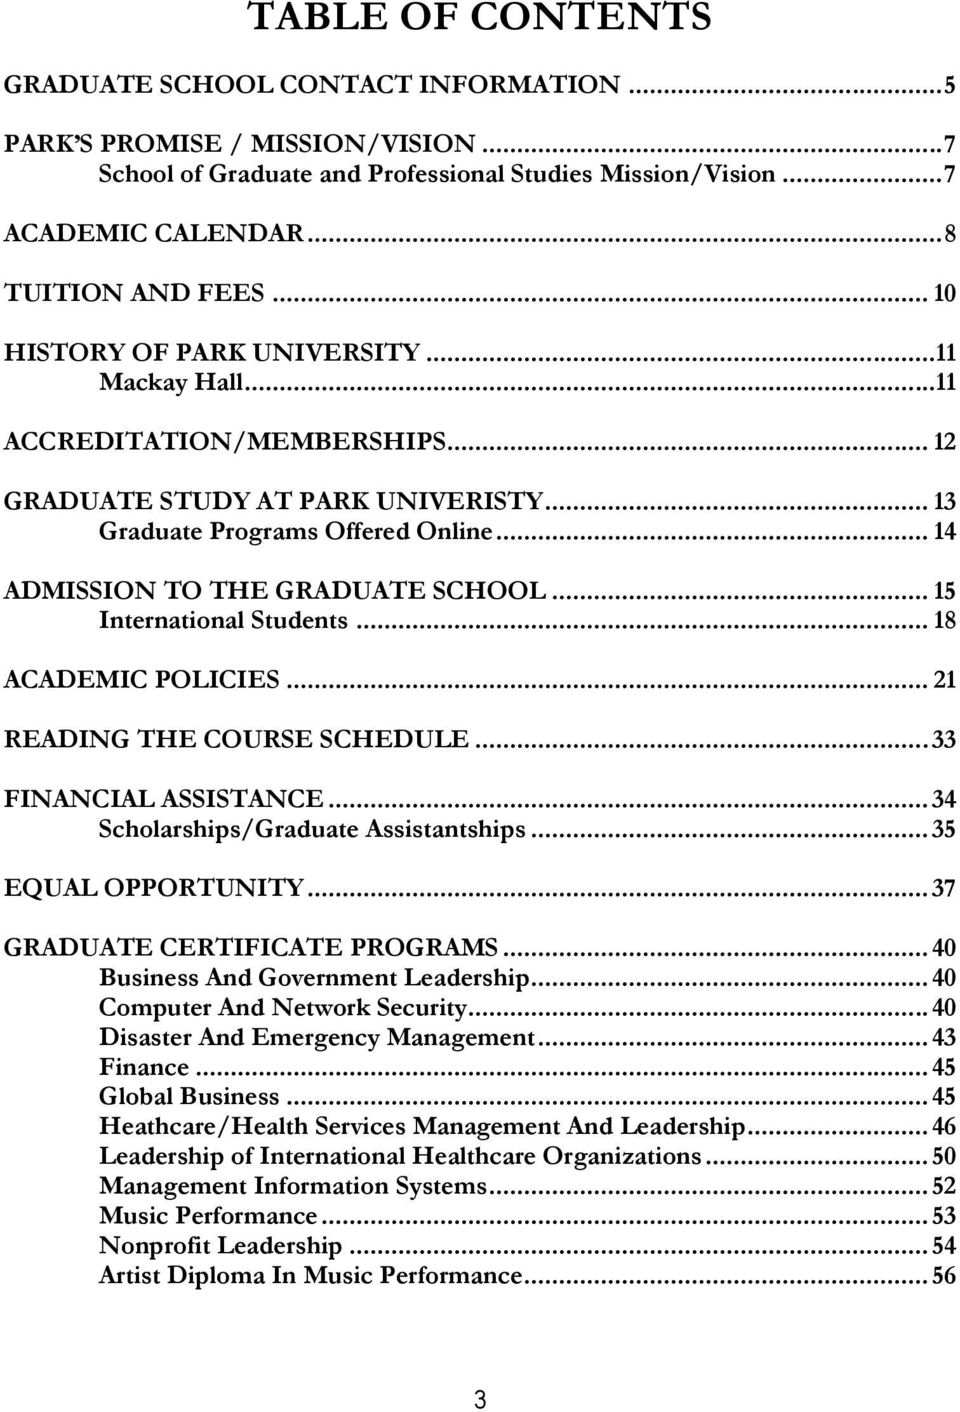 .. 15 International Students... 18 ACADEMIC POLICIES... 21 READING THE COURSE SCHEDULE... 33 FINANCIAL ASSISTANCE... 34 Scholarships/Graduate Assistantships... 35 EQUAL OPPORTUNITY.